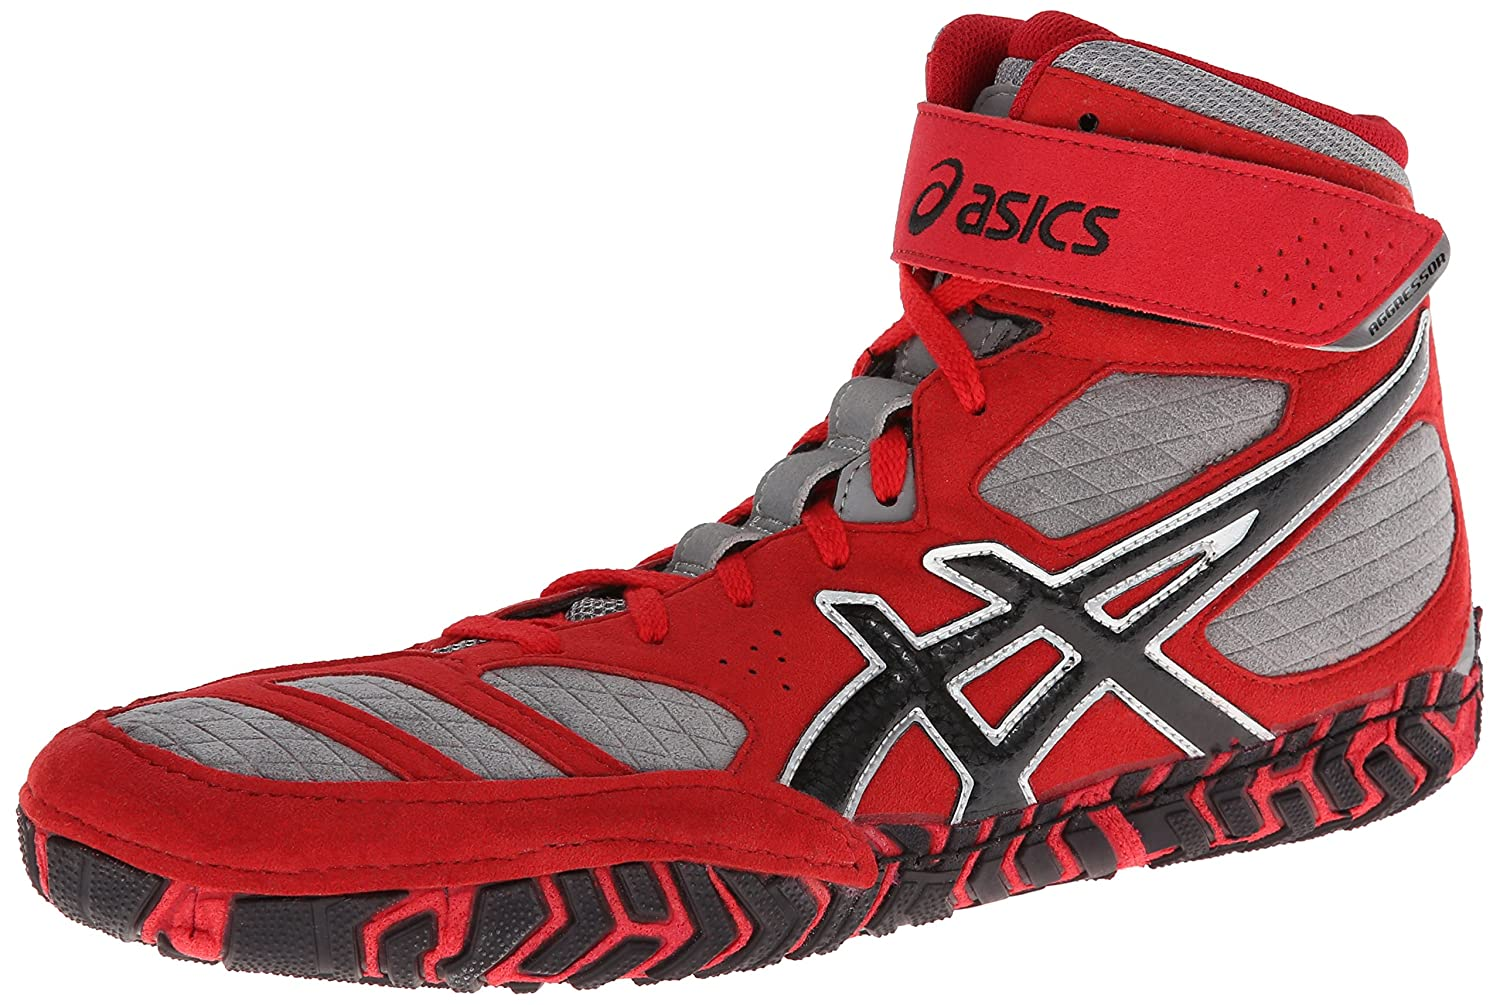 ASICS Men's Aggressor 2 Wrestling Shoe B00GY6M11A 8 D(M) US|Fire Red/Black/Graphite